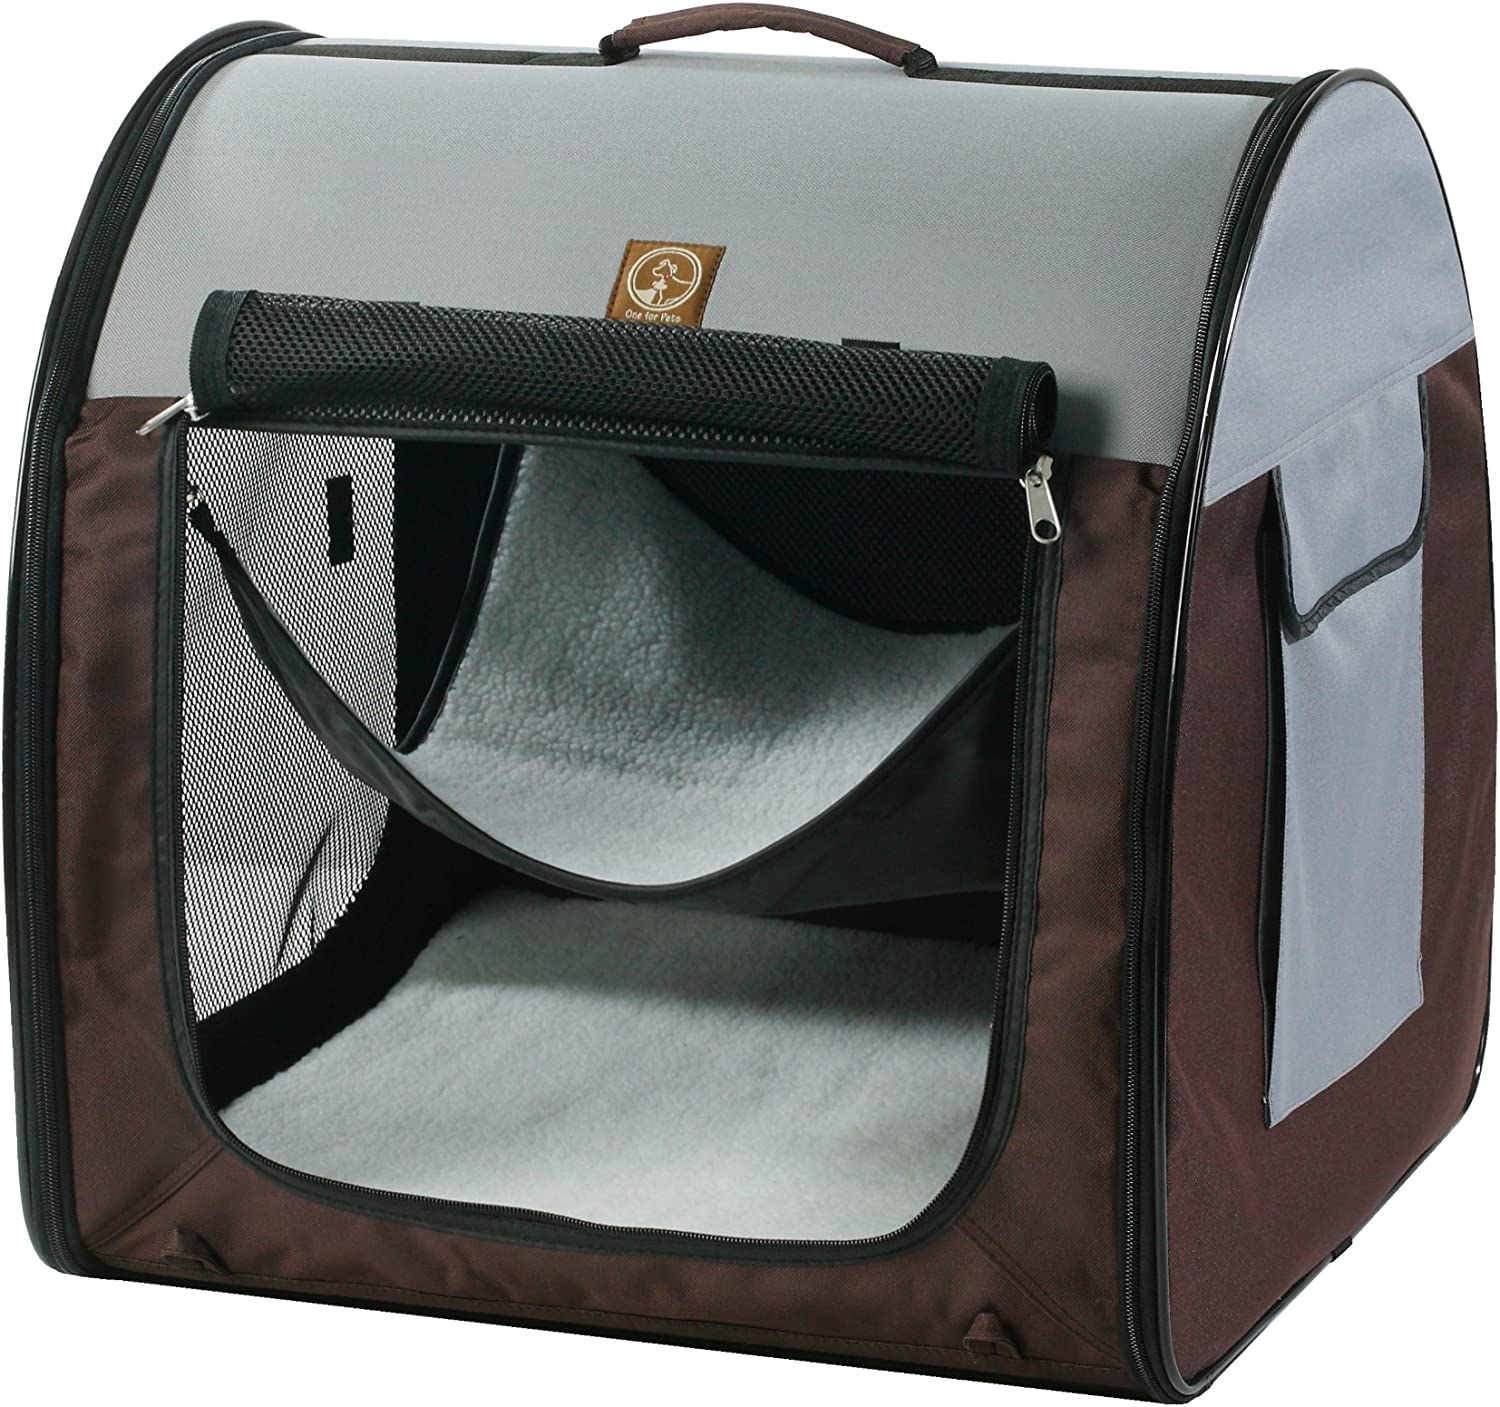 One for Pets Fabric Portable Pet Kennel, Single, Grey Brown, 20 x20 x19.5